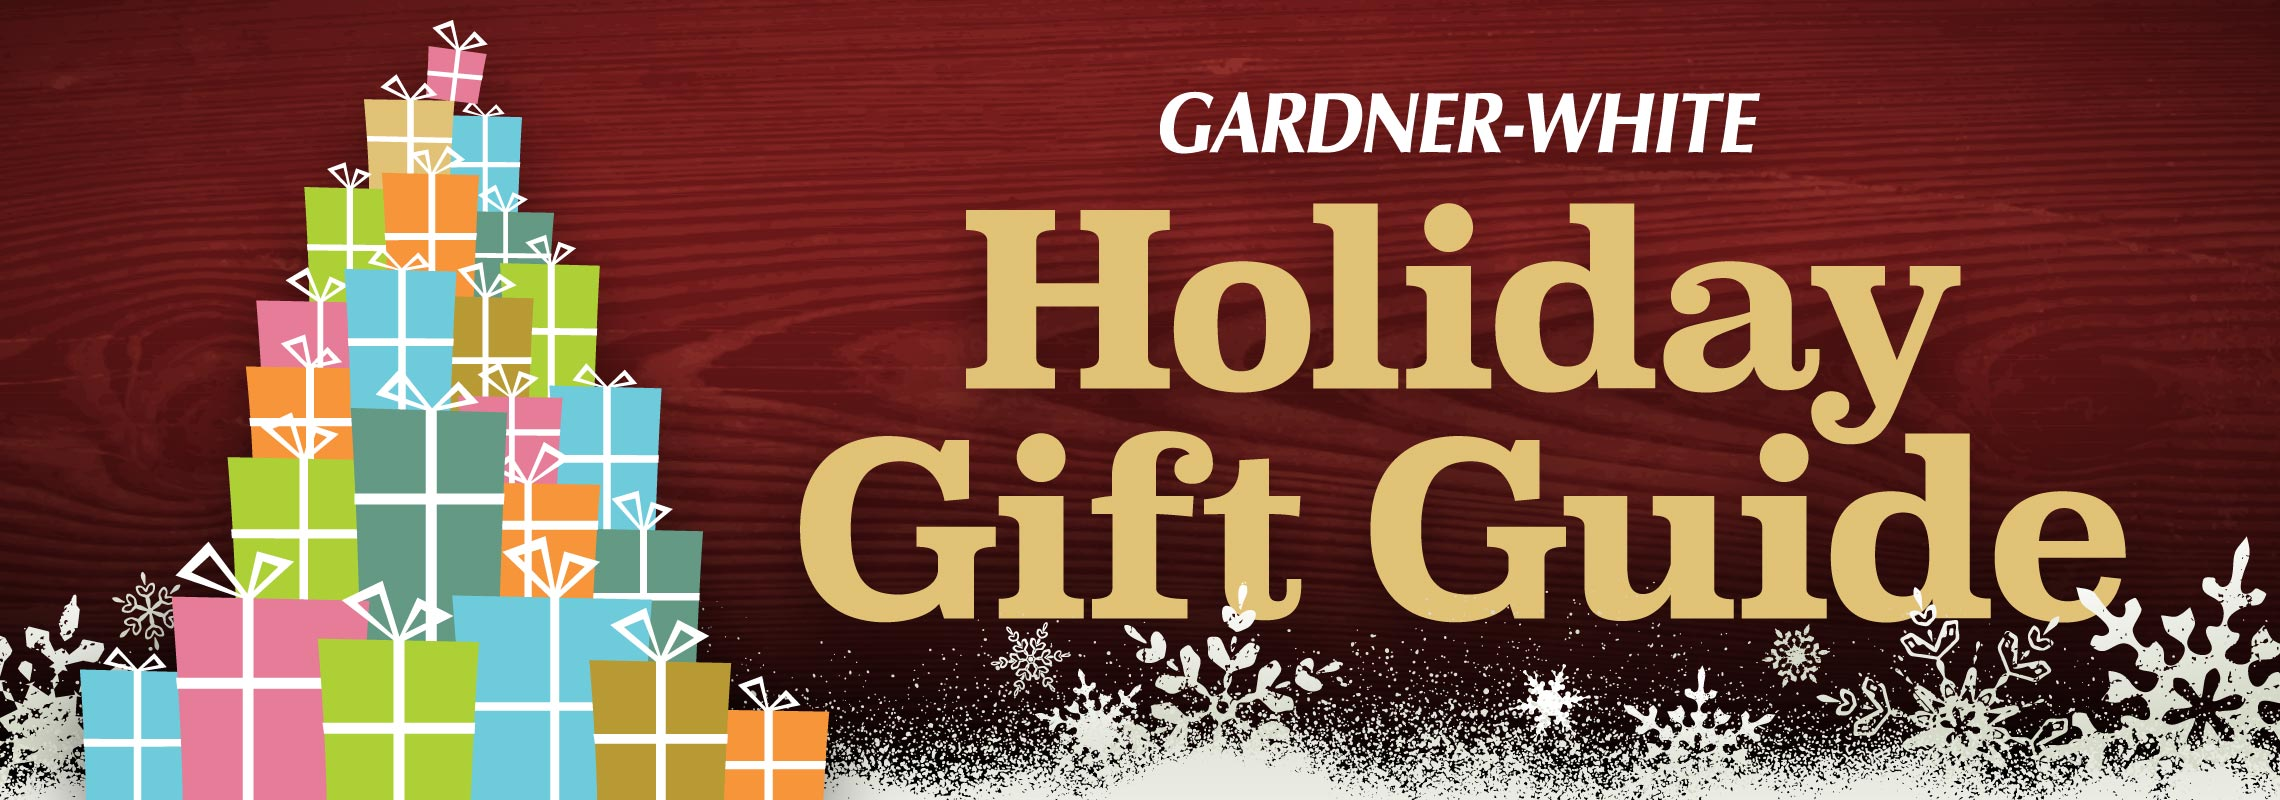 Gardner-White Holiday Gift Guide